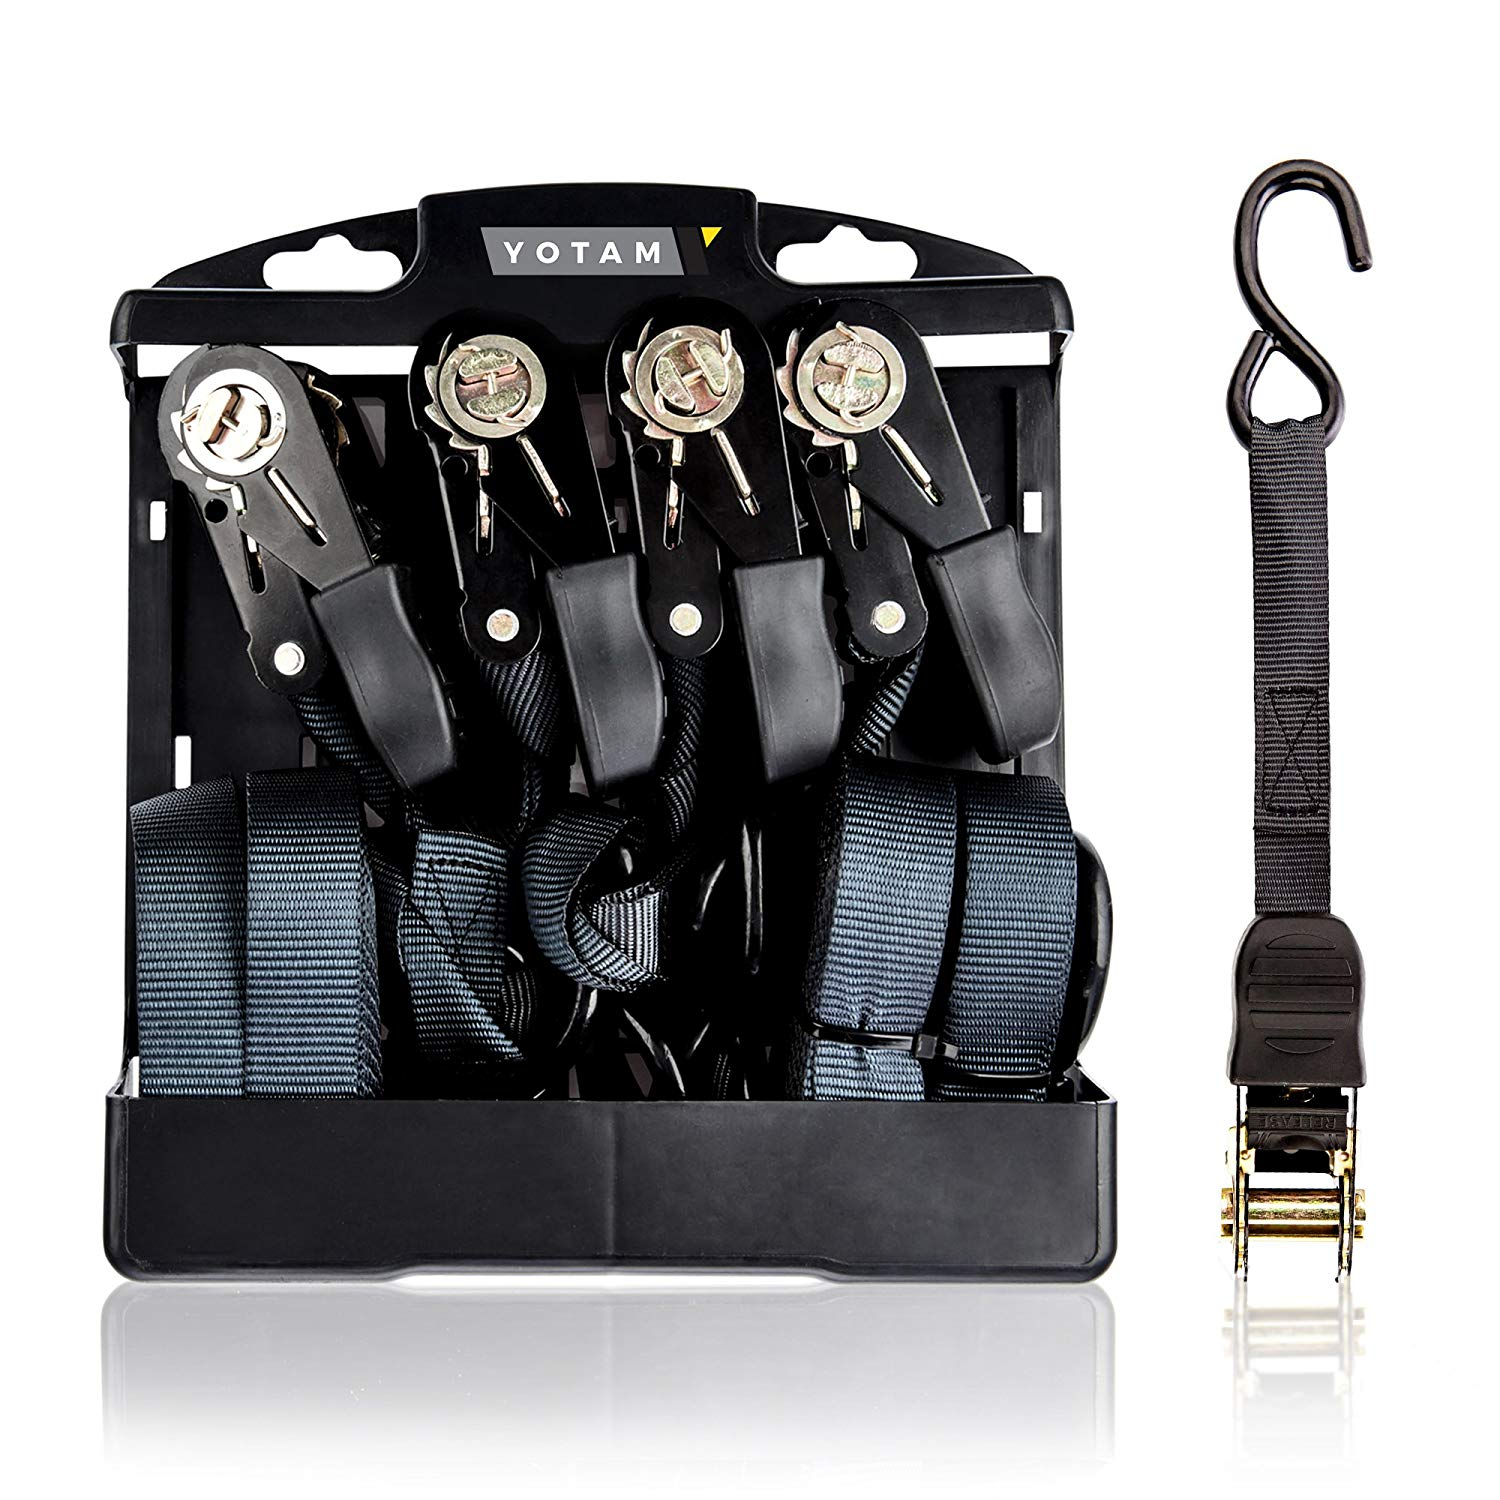 Yotam Black Cambuckle Ratchet Strap Tie Down Set, 4 Pack Case of 20 Ft. Long, 1 inch Wide Adjustable Cargo Straps with Coated Hooks - Perfect for Securing and Towing Pickup Vehicle Trucks, Motorcycle,